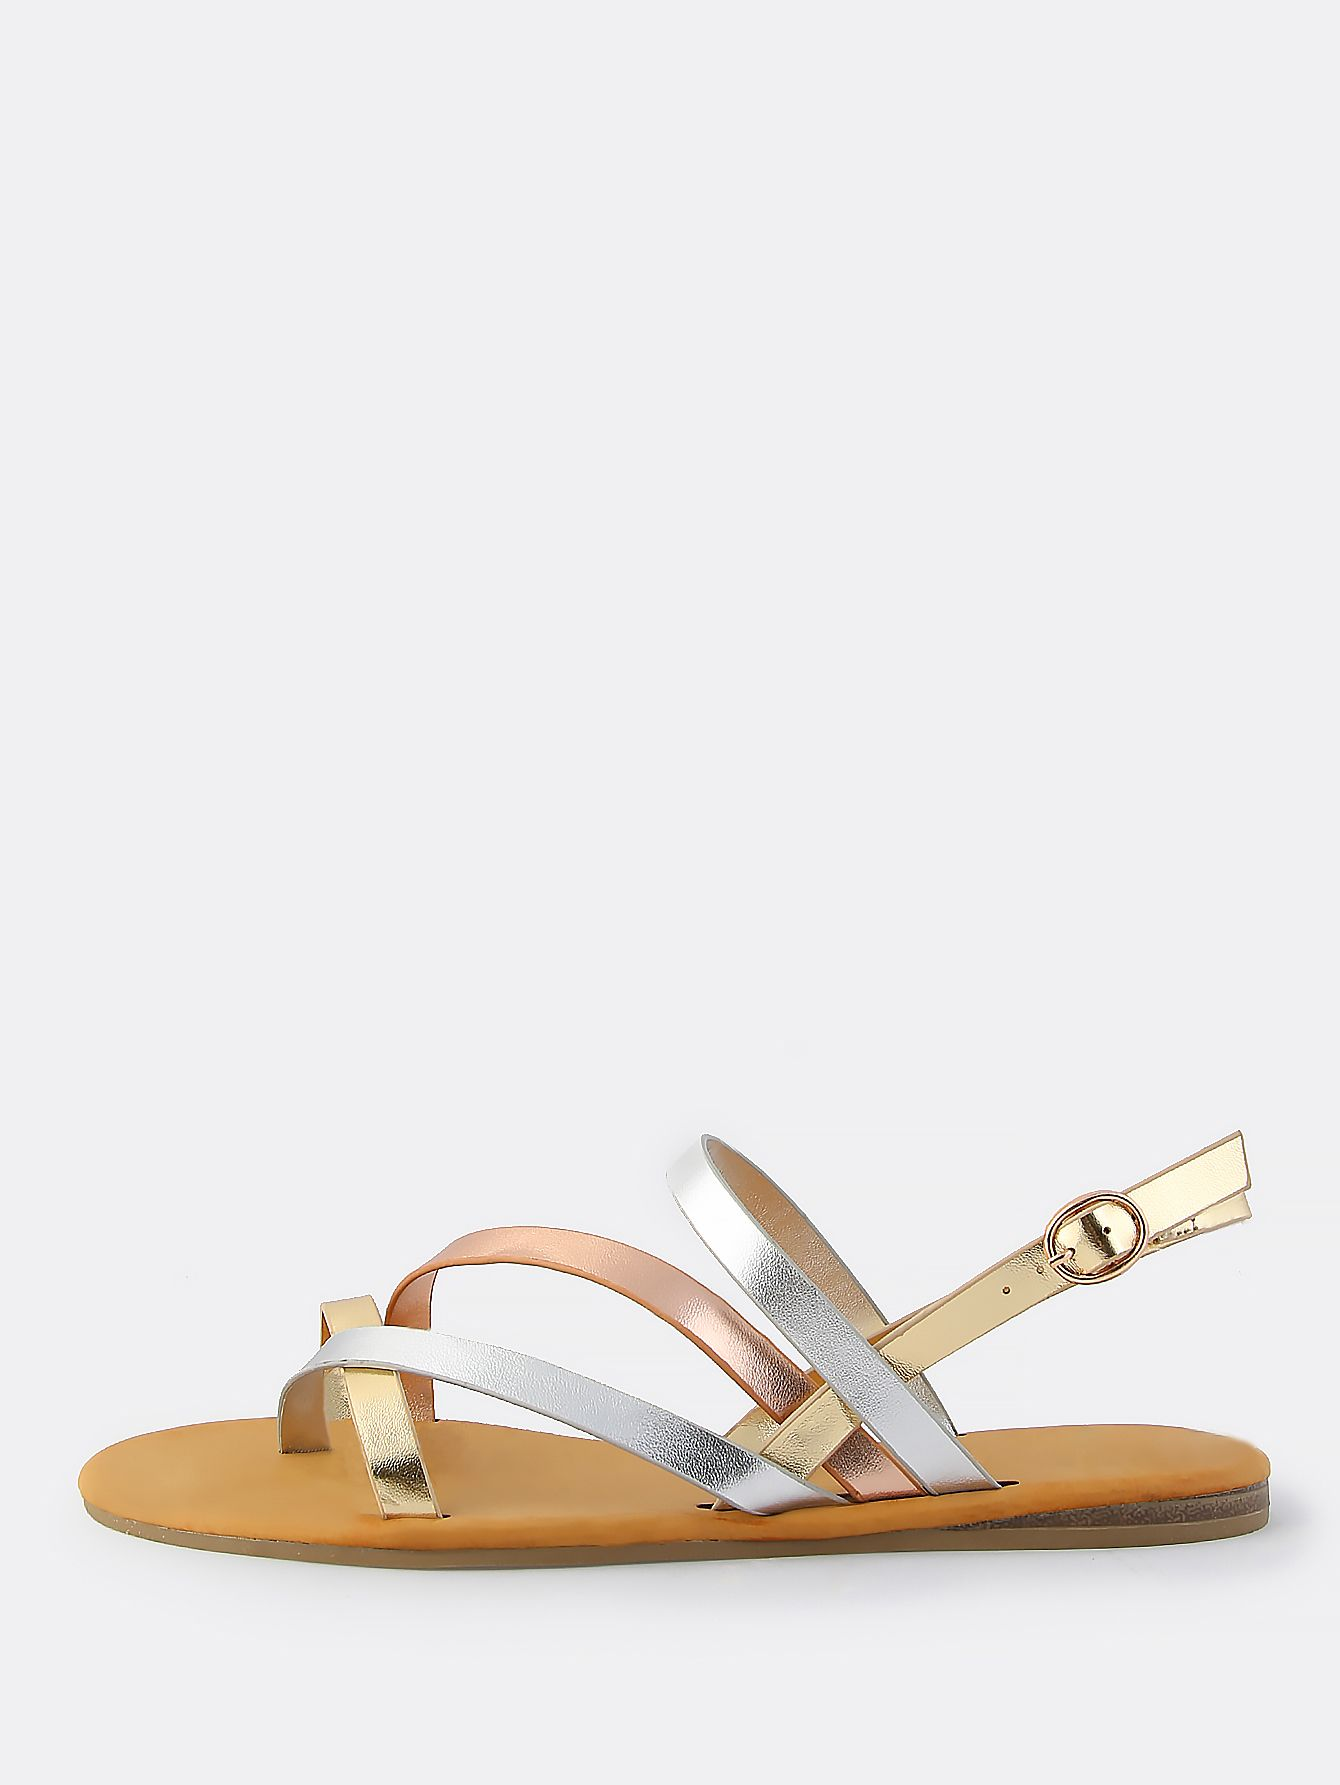 b9f446975 Shop Metallic Multi Cross Strap Sandals METALLIC online. SheIn offers  Metallic Multi Cross Strap Sandals METALLIC & more to fit your fashionable  needs.